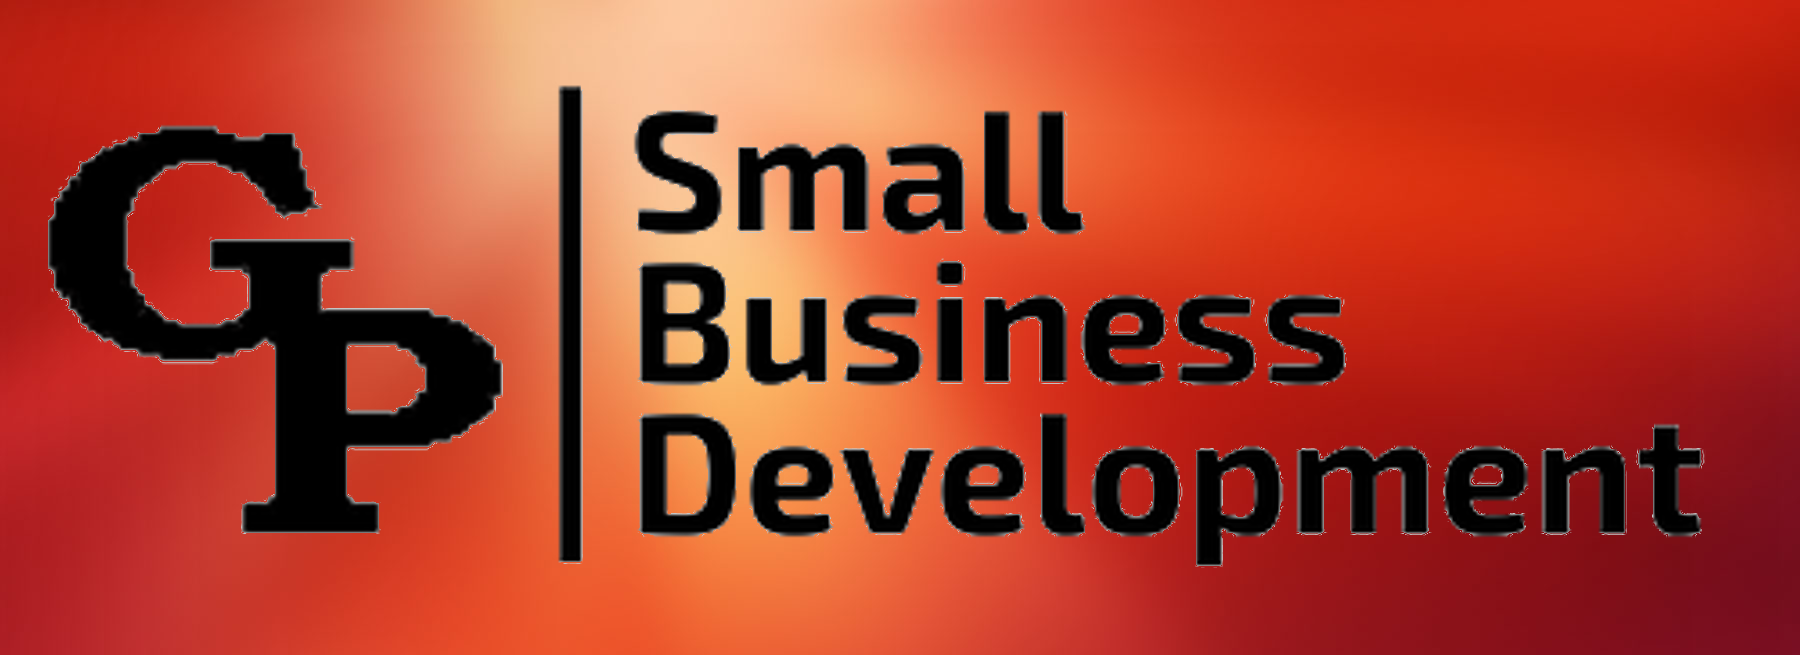 GP Small Business Development